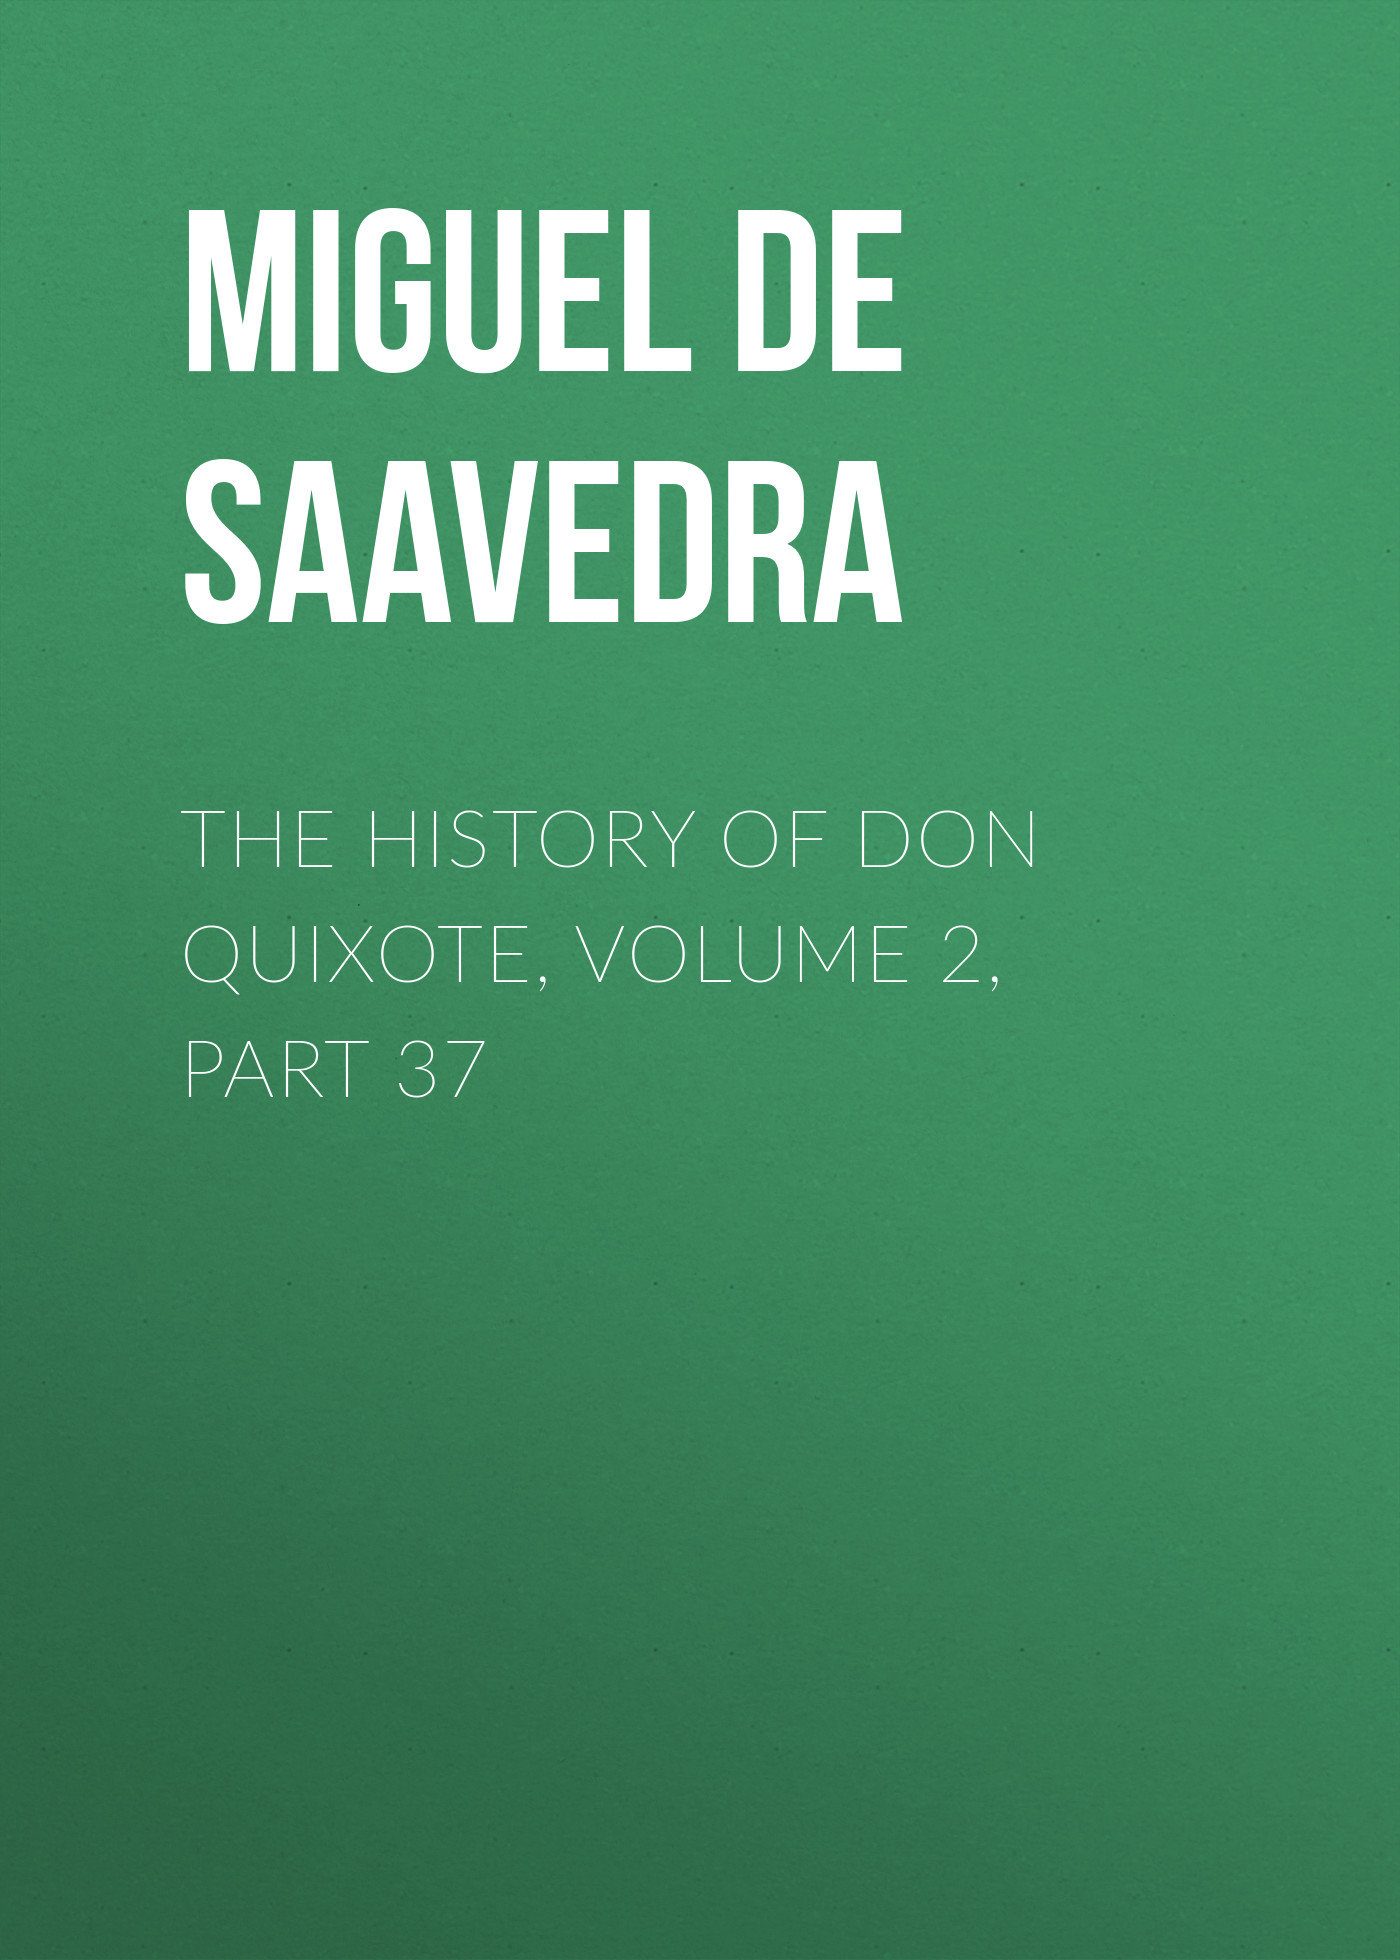 Мигель де Сервантес Сааведра The History of Don Quixote, Volume 2, Part 37 rasmus björn anderson the heimskringla a history of the norse kings volume 5 part 2